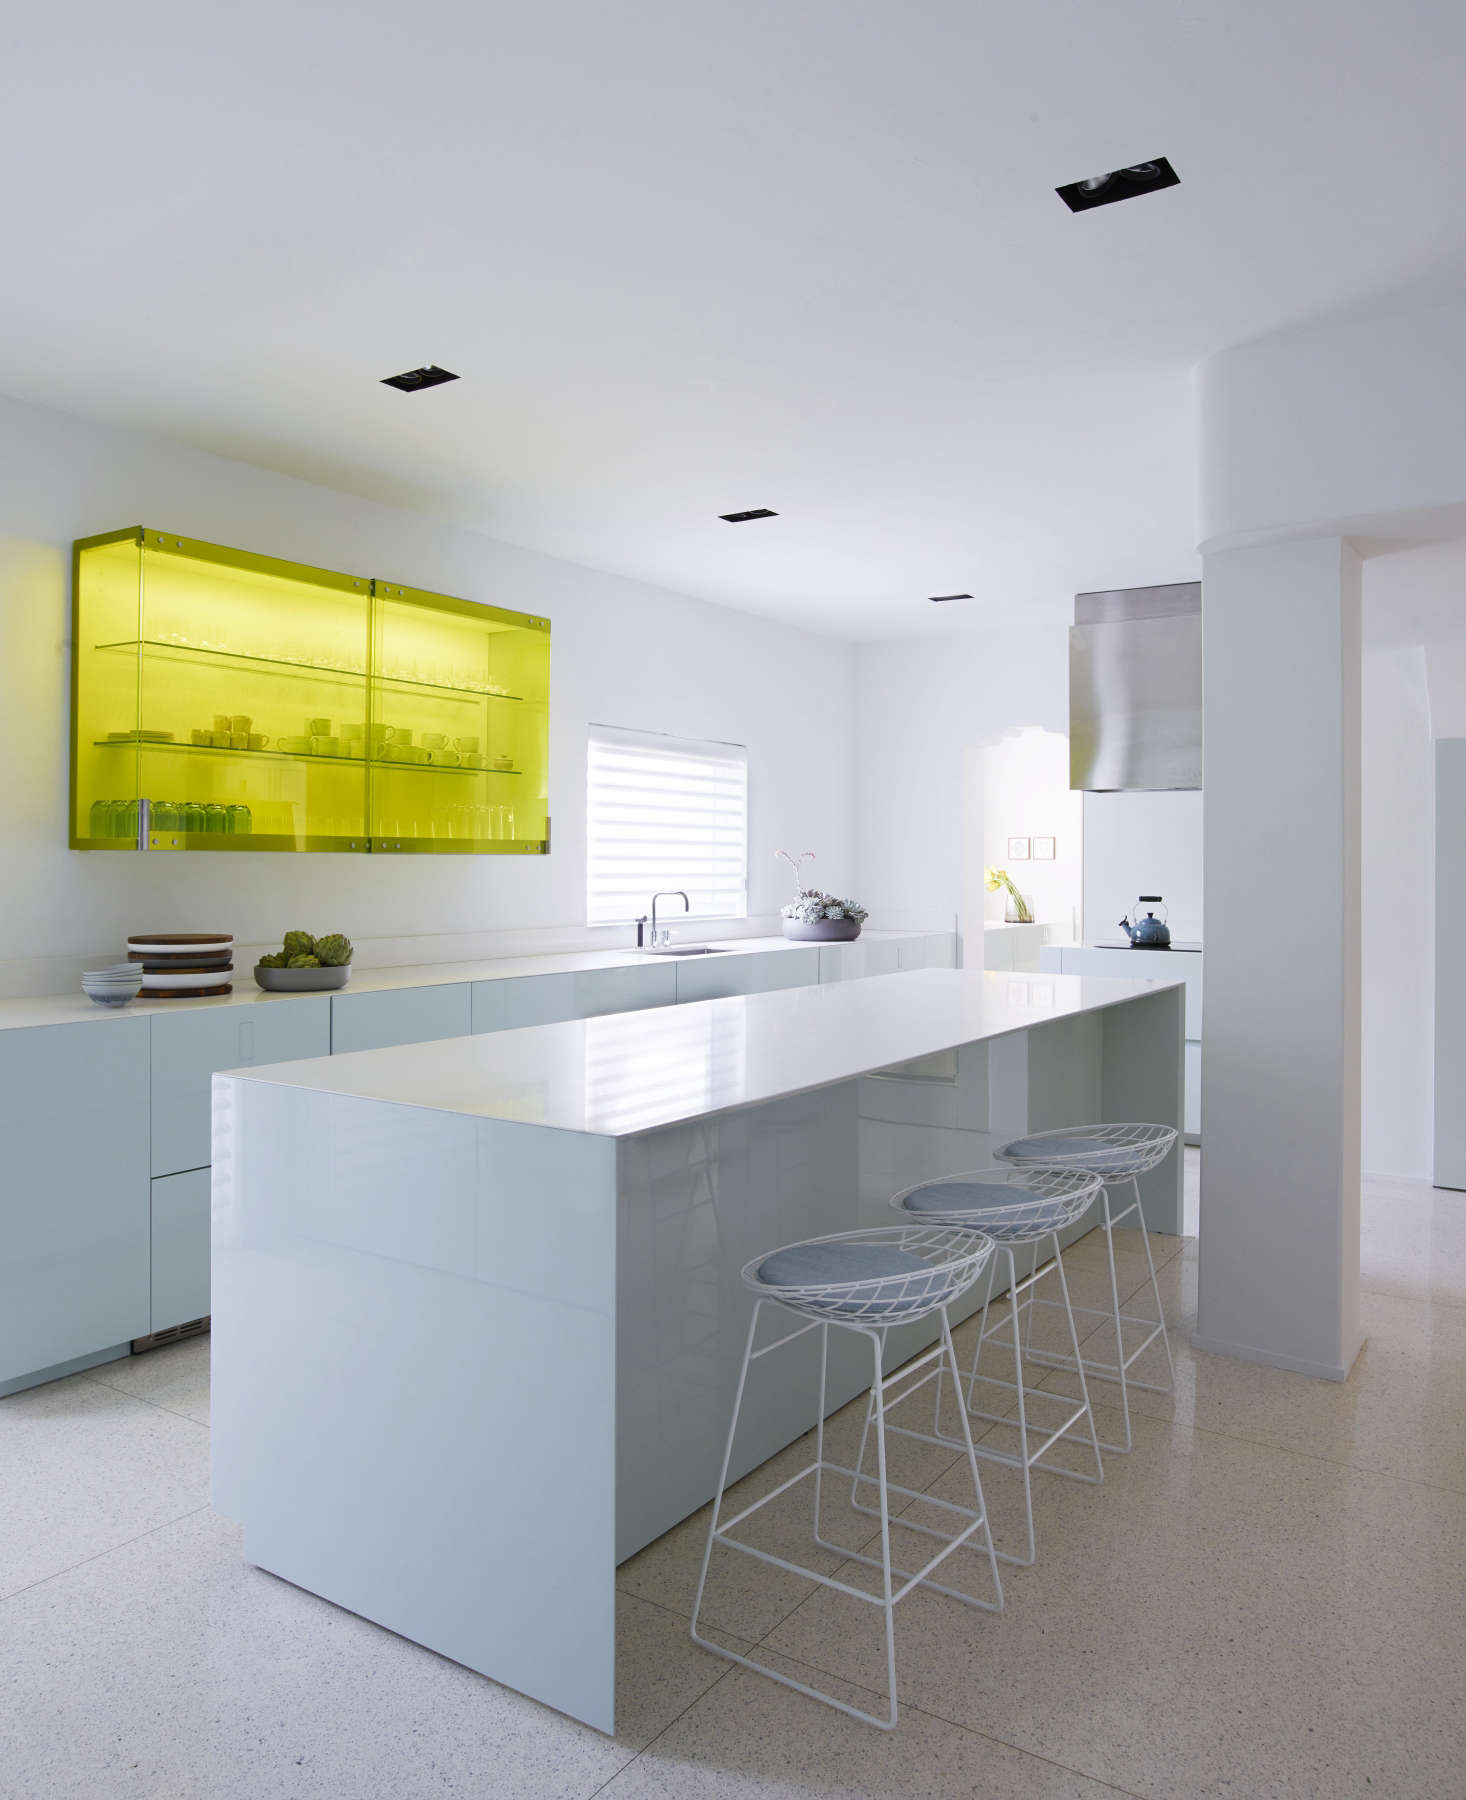 Awesome Minimalist contemporary kitchen in a revived Miami villa belonging to contemporary furniture dealer Stephan Weishaupt